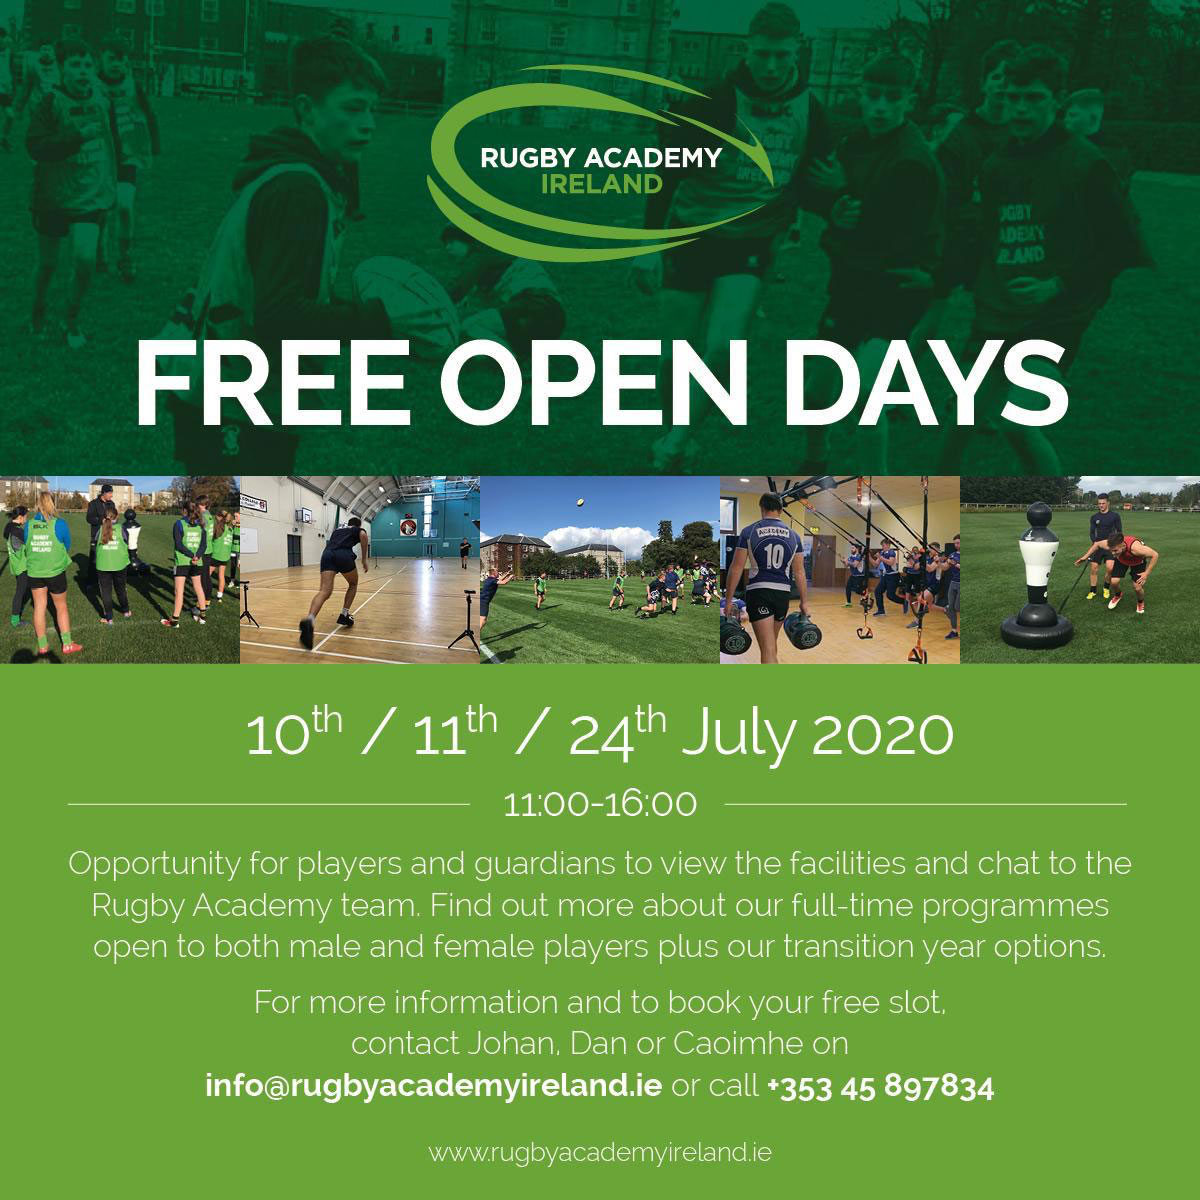 Free open days